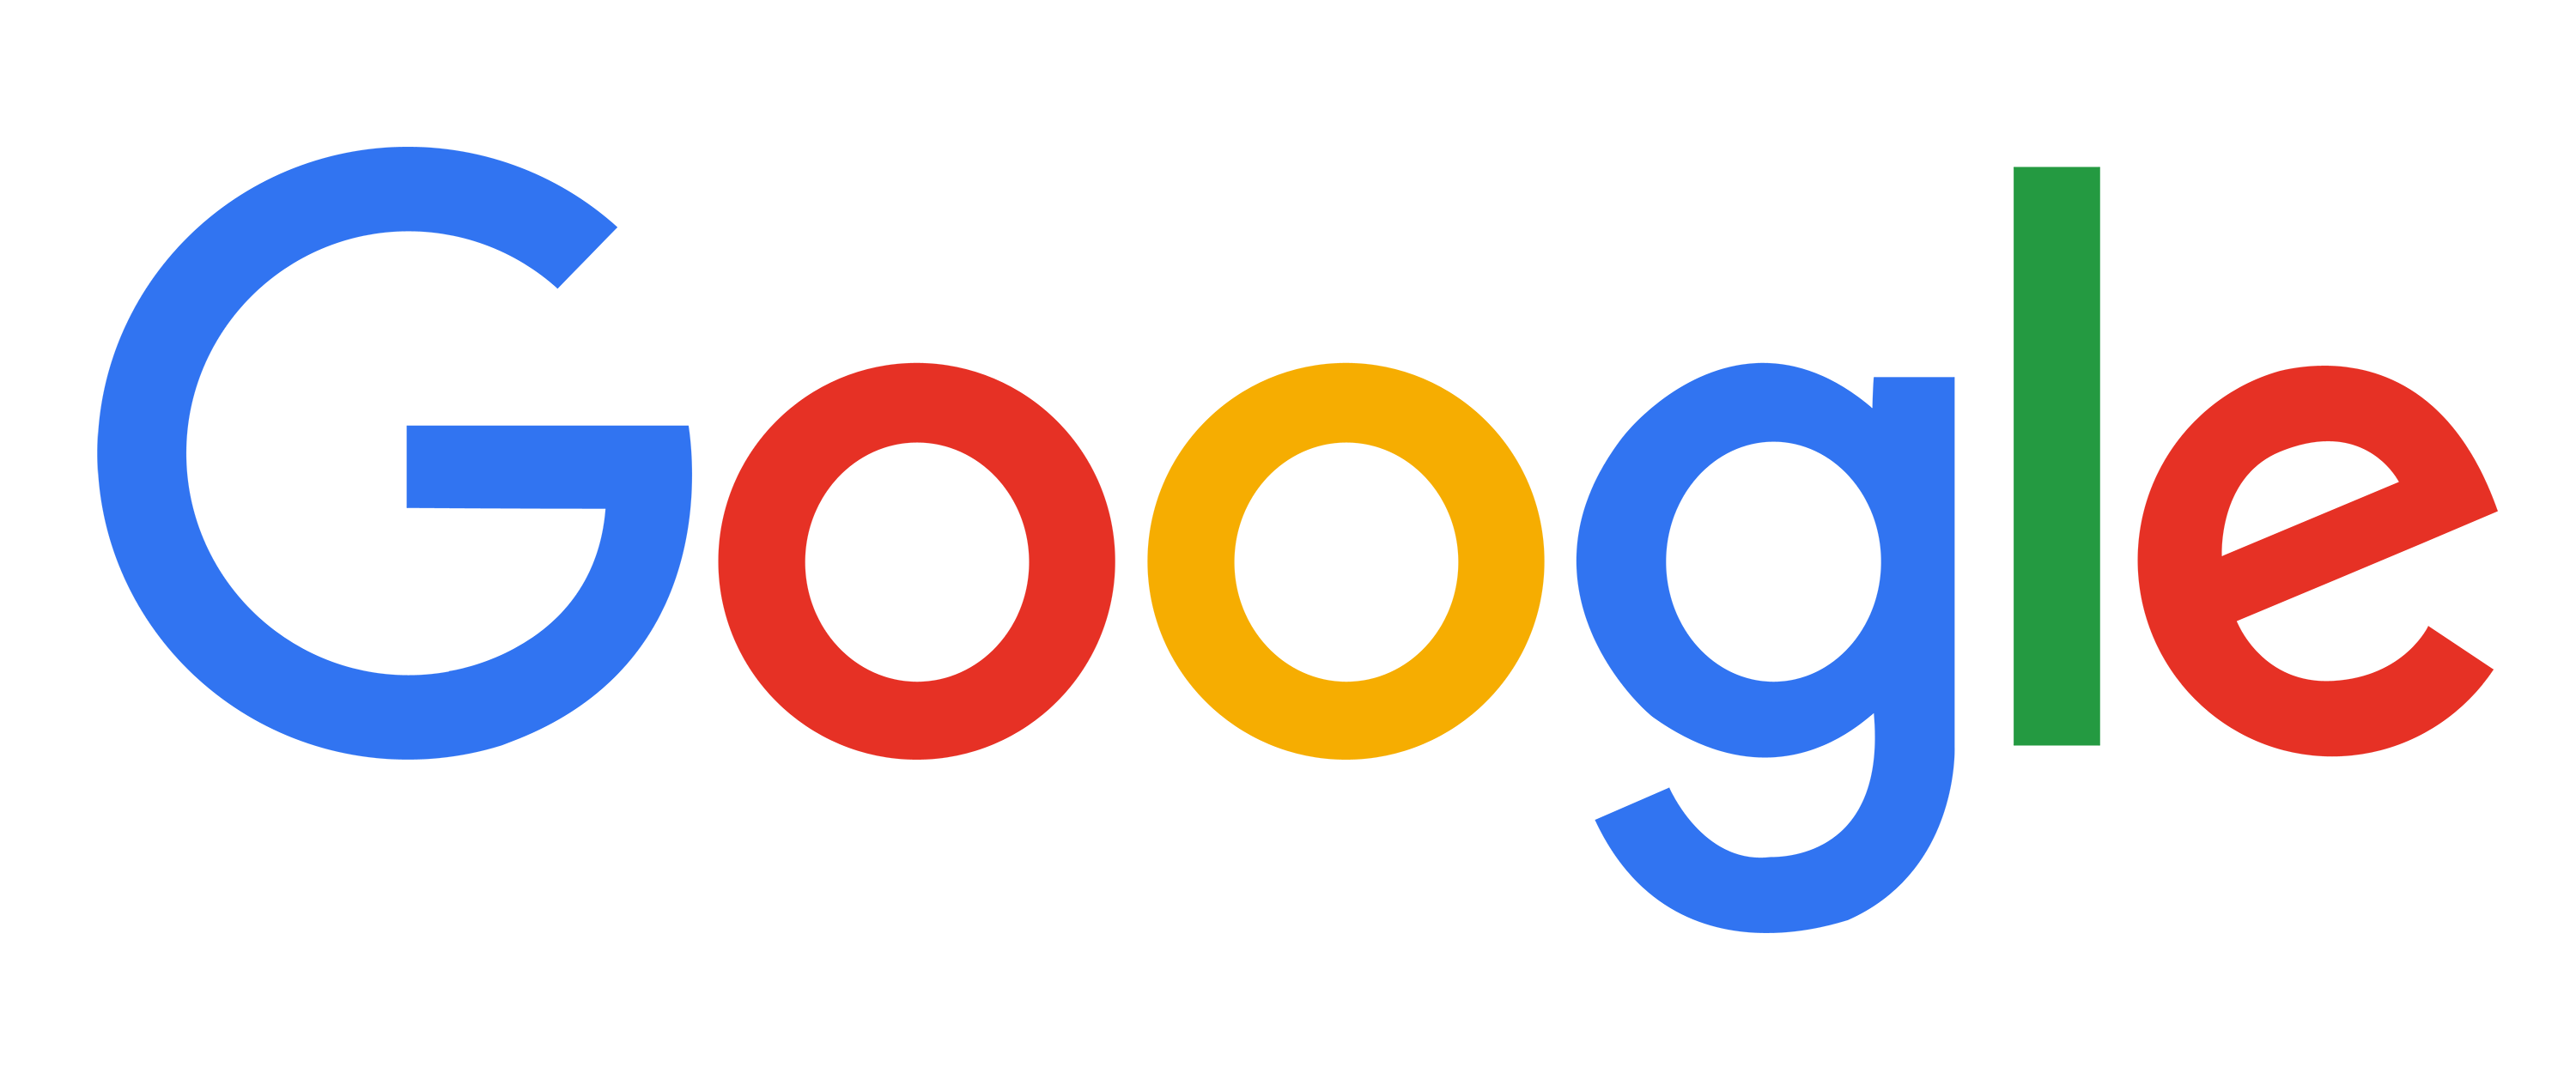 Google India Recruitment Drive 2016 Off Campus for Freshers & Experienced